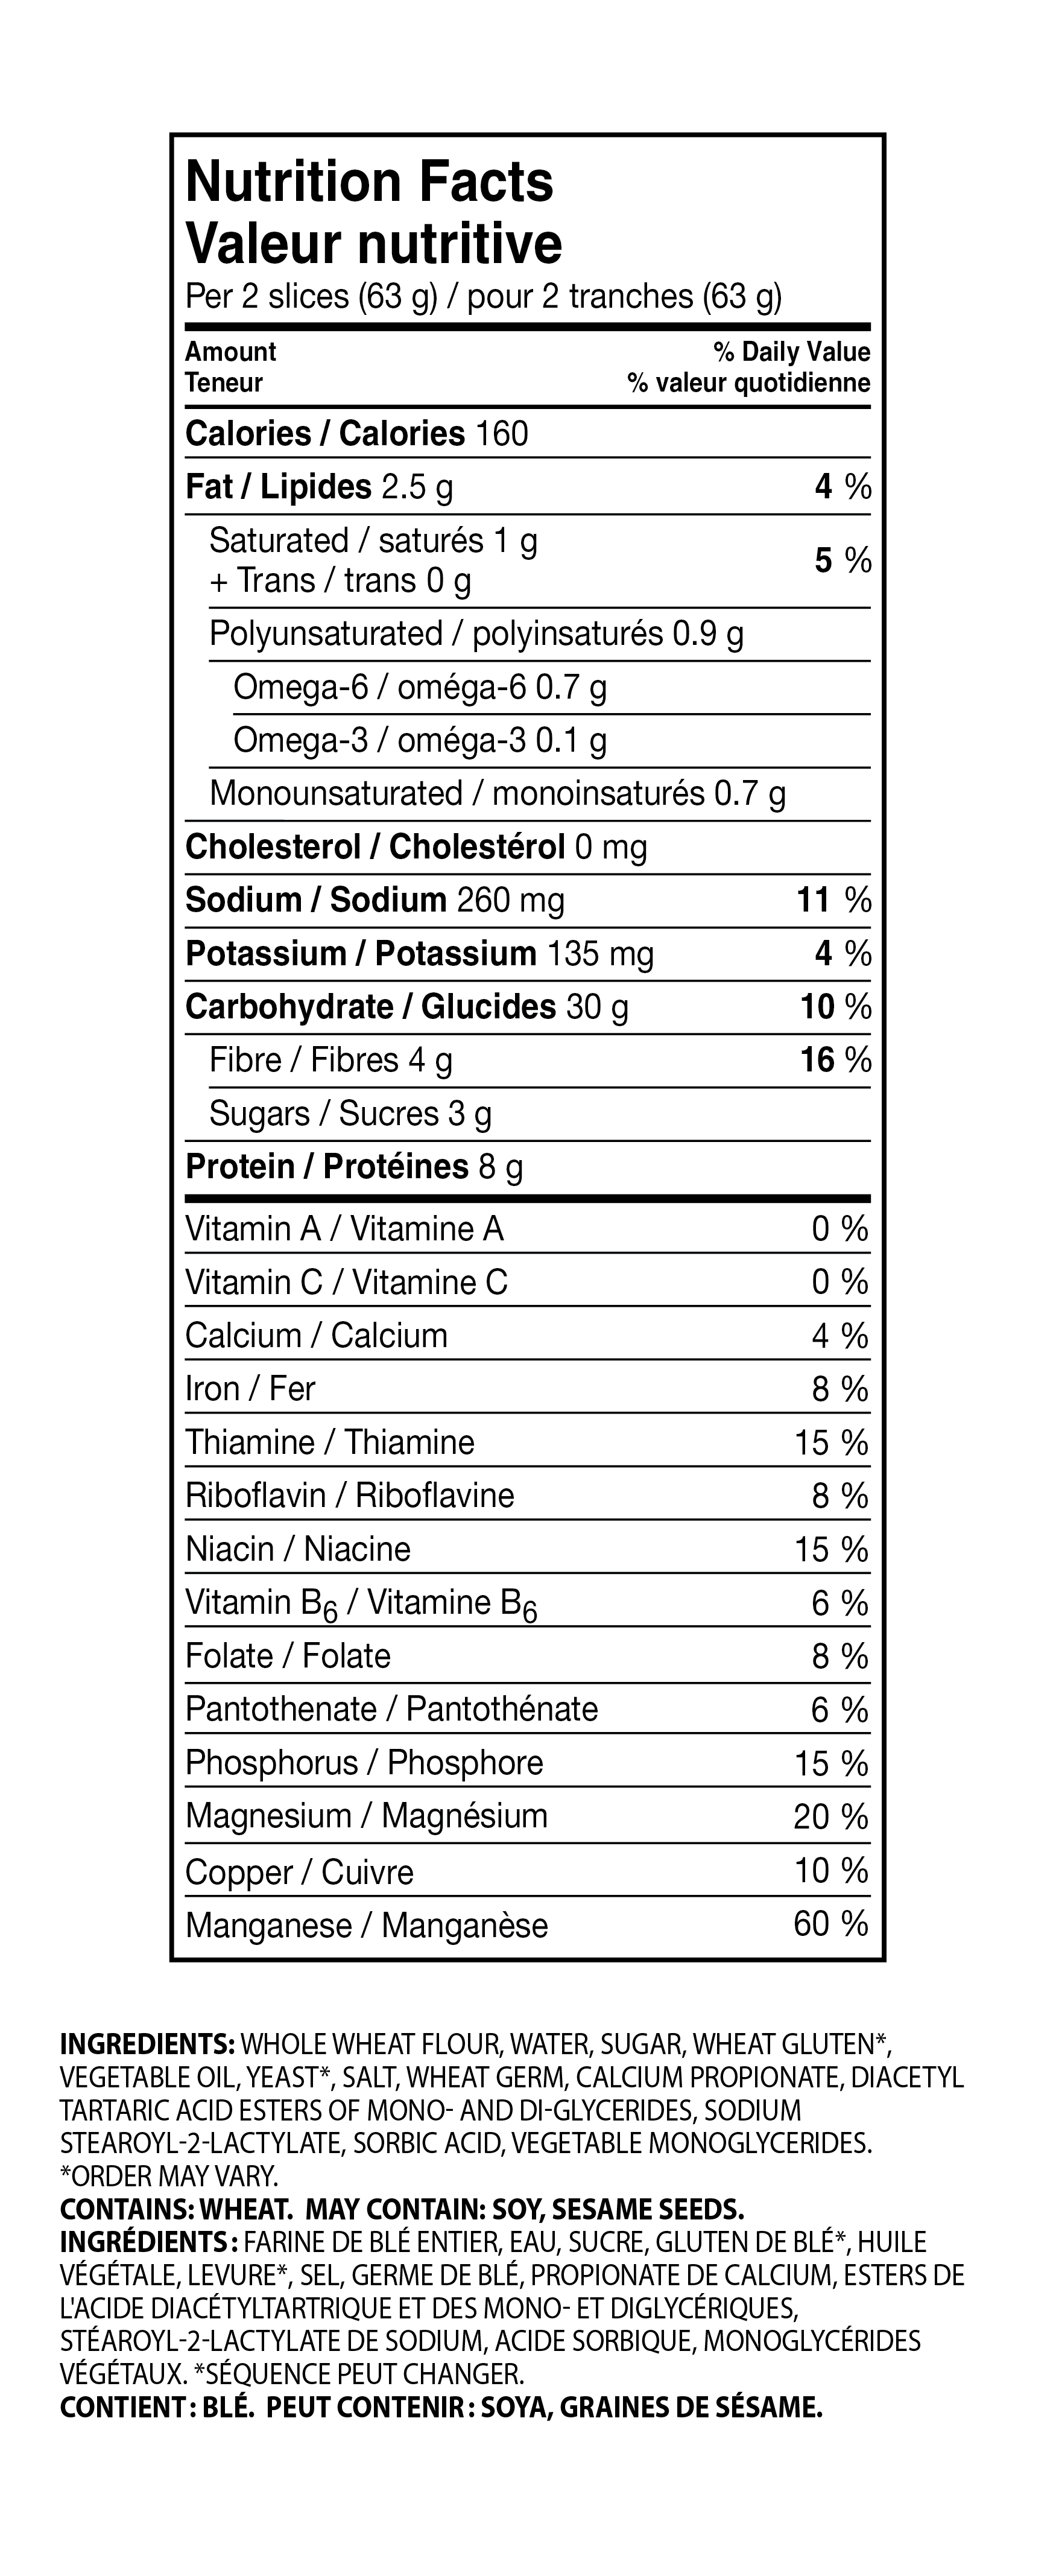 Nutritional information for Wonder® 100% Whole Wheat Bread 570g